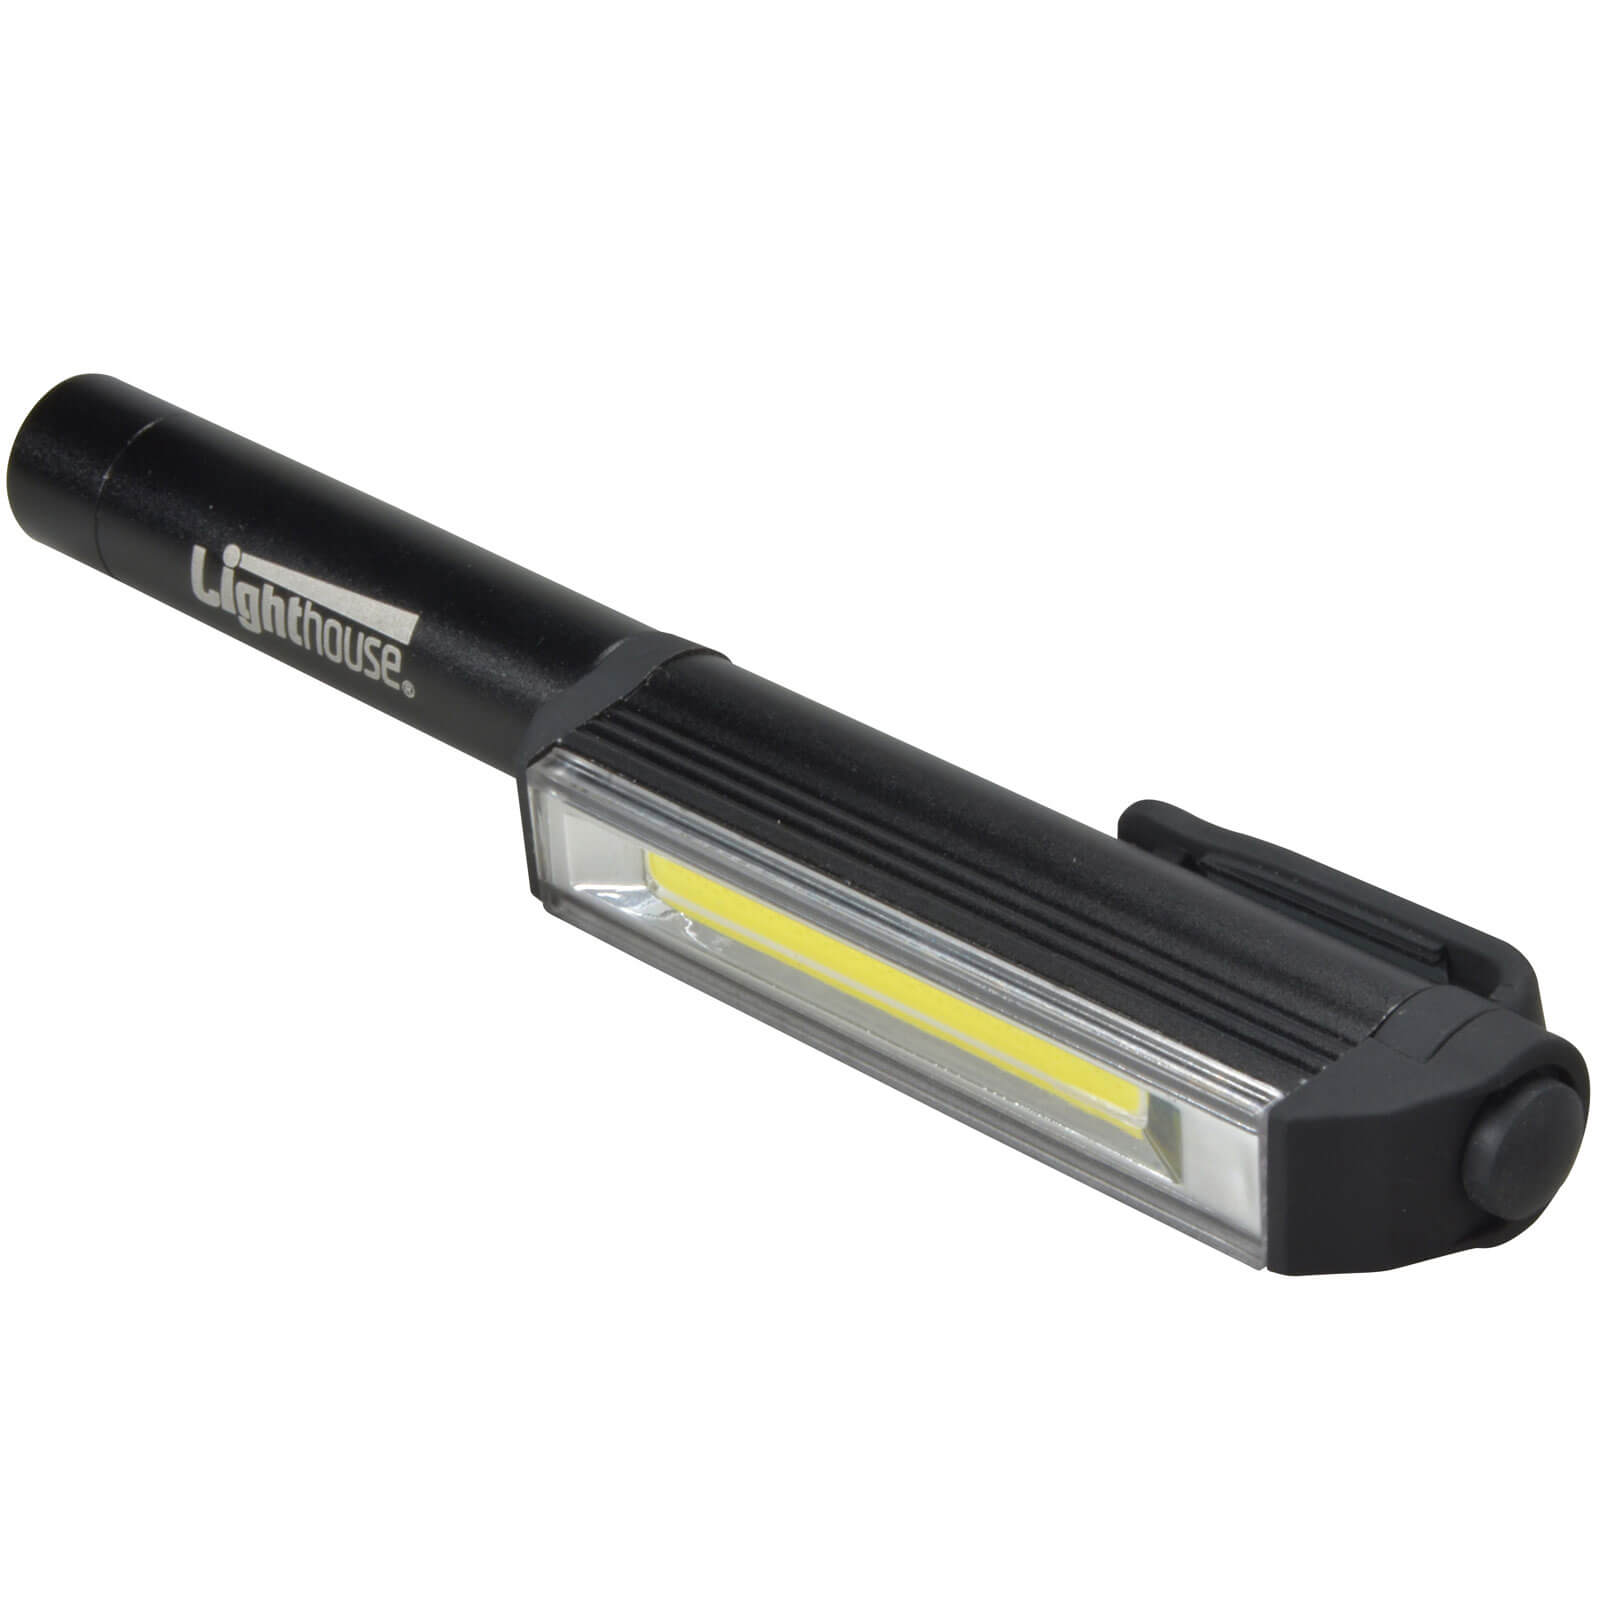 Image of Lighthouse COB LED Mini Pen Inspection Light